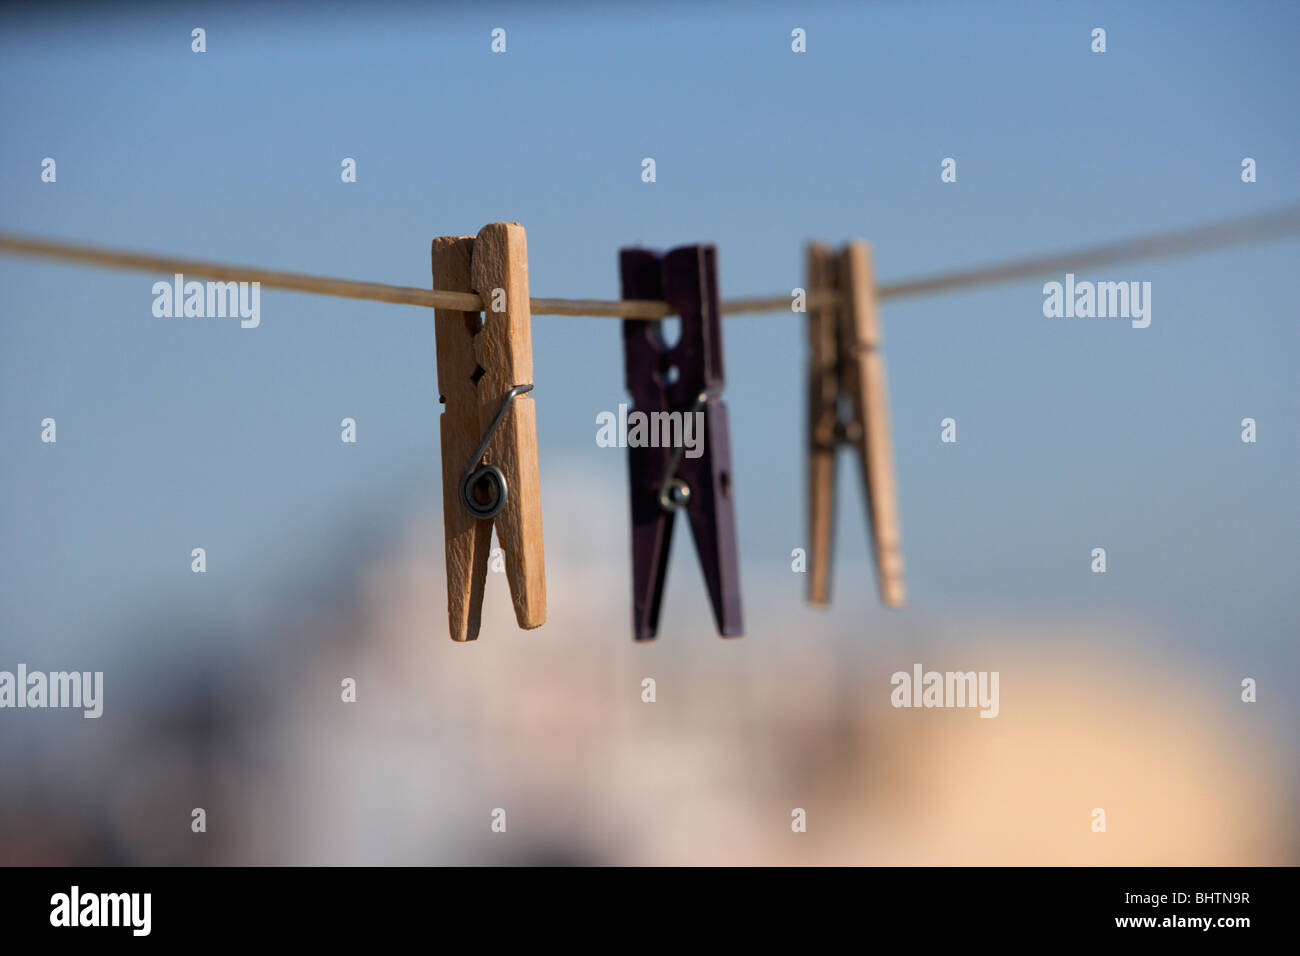 three clothes pegs hanging on a washing line against a bright blue sky over the city - Stock Image